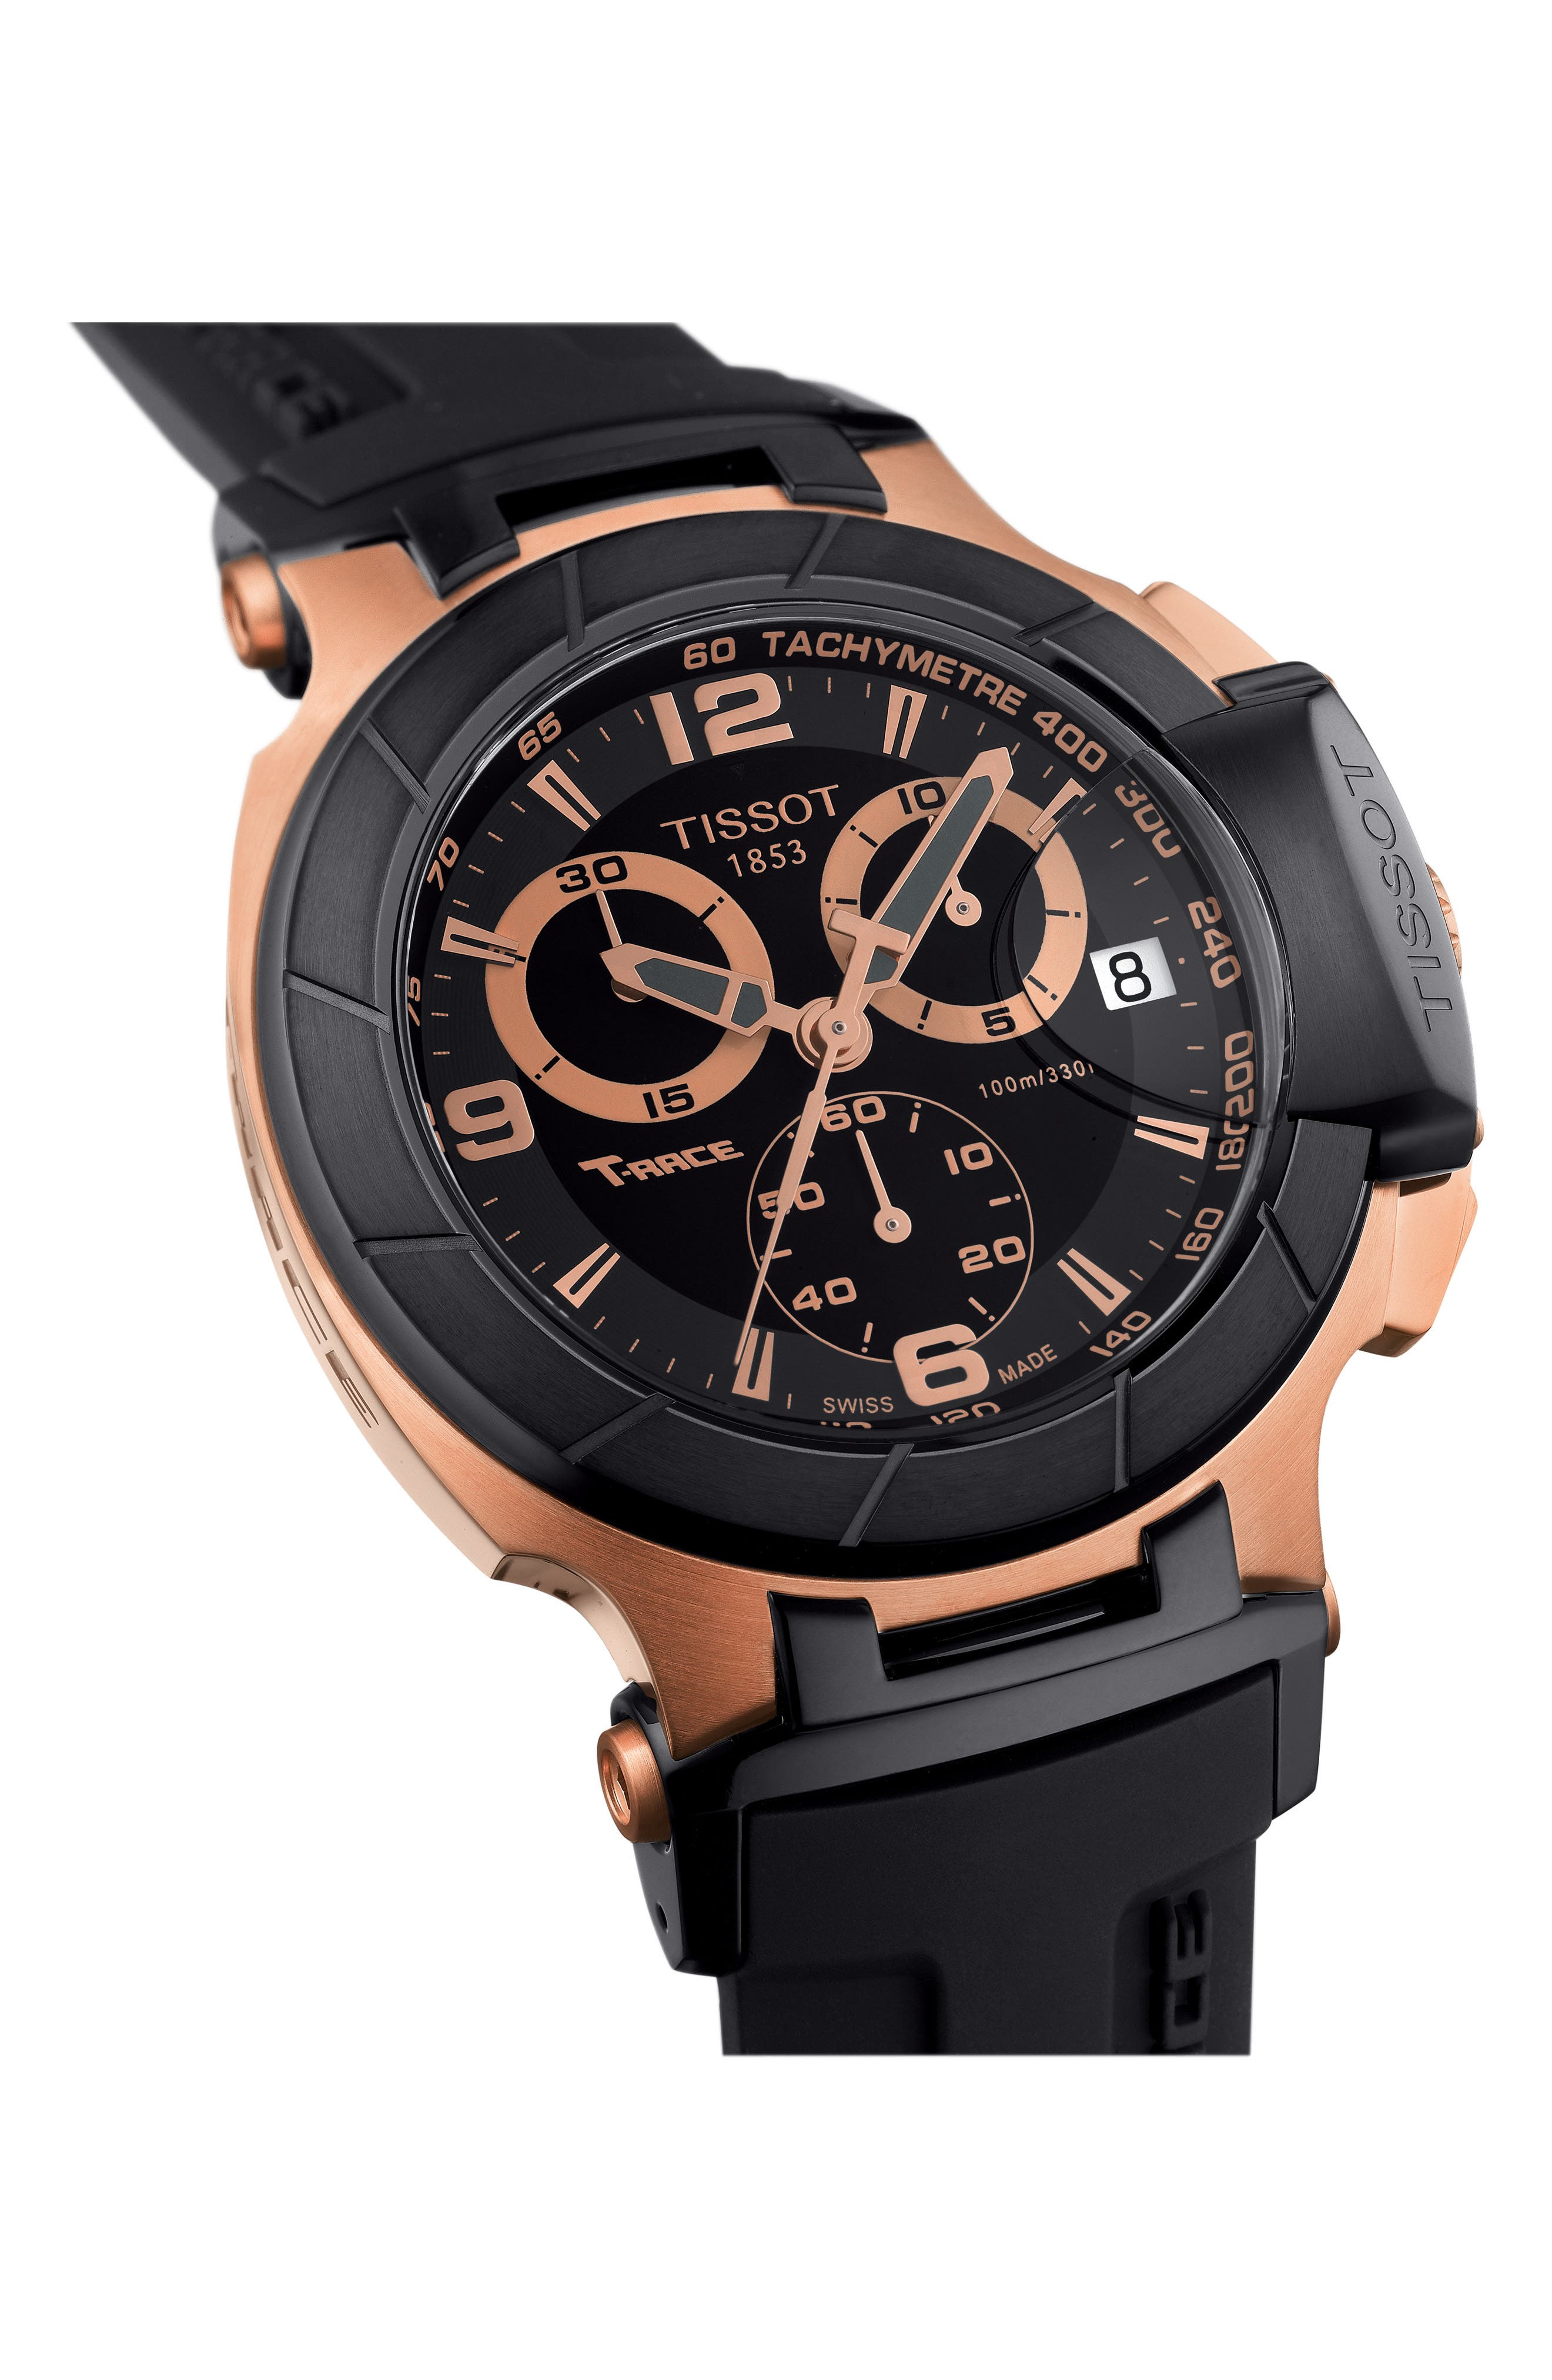 TISSOT, T-Race Chronograph Silicone Strap Watch, 50mm, Alternate thumbnail 2, color, BLACK/ ROSE GOLD